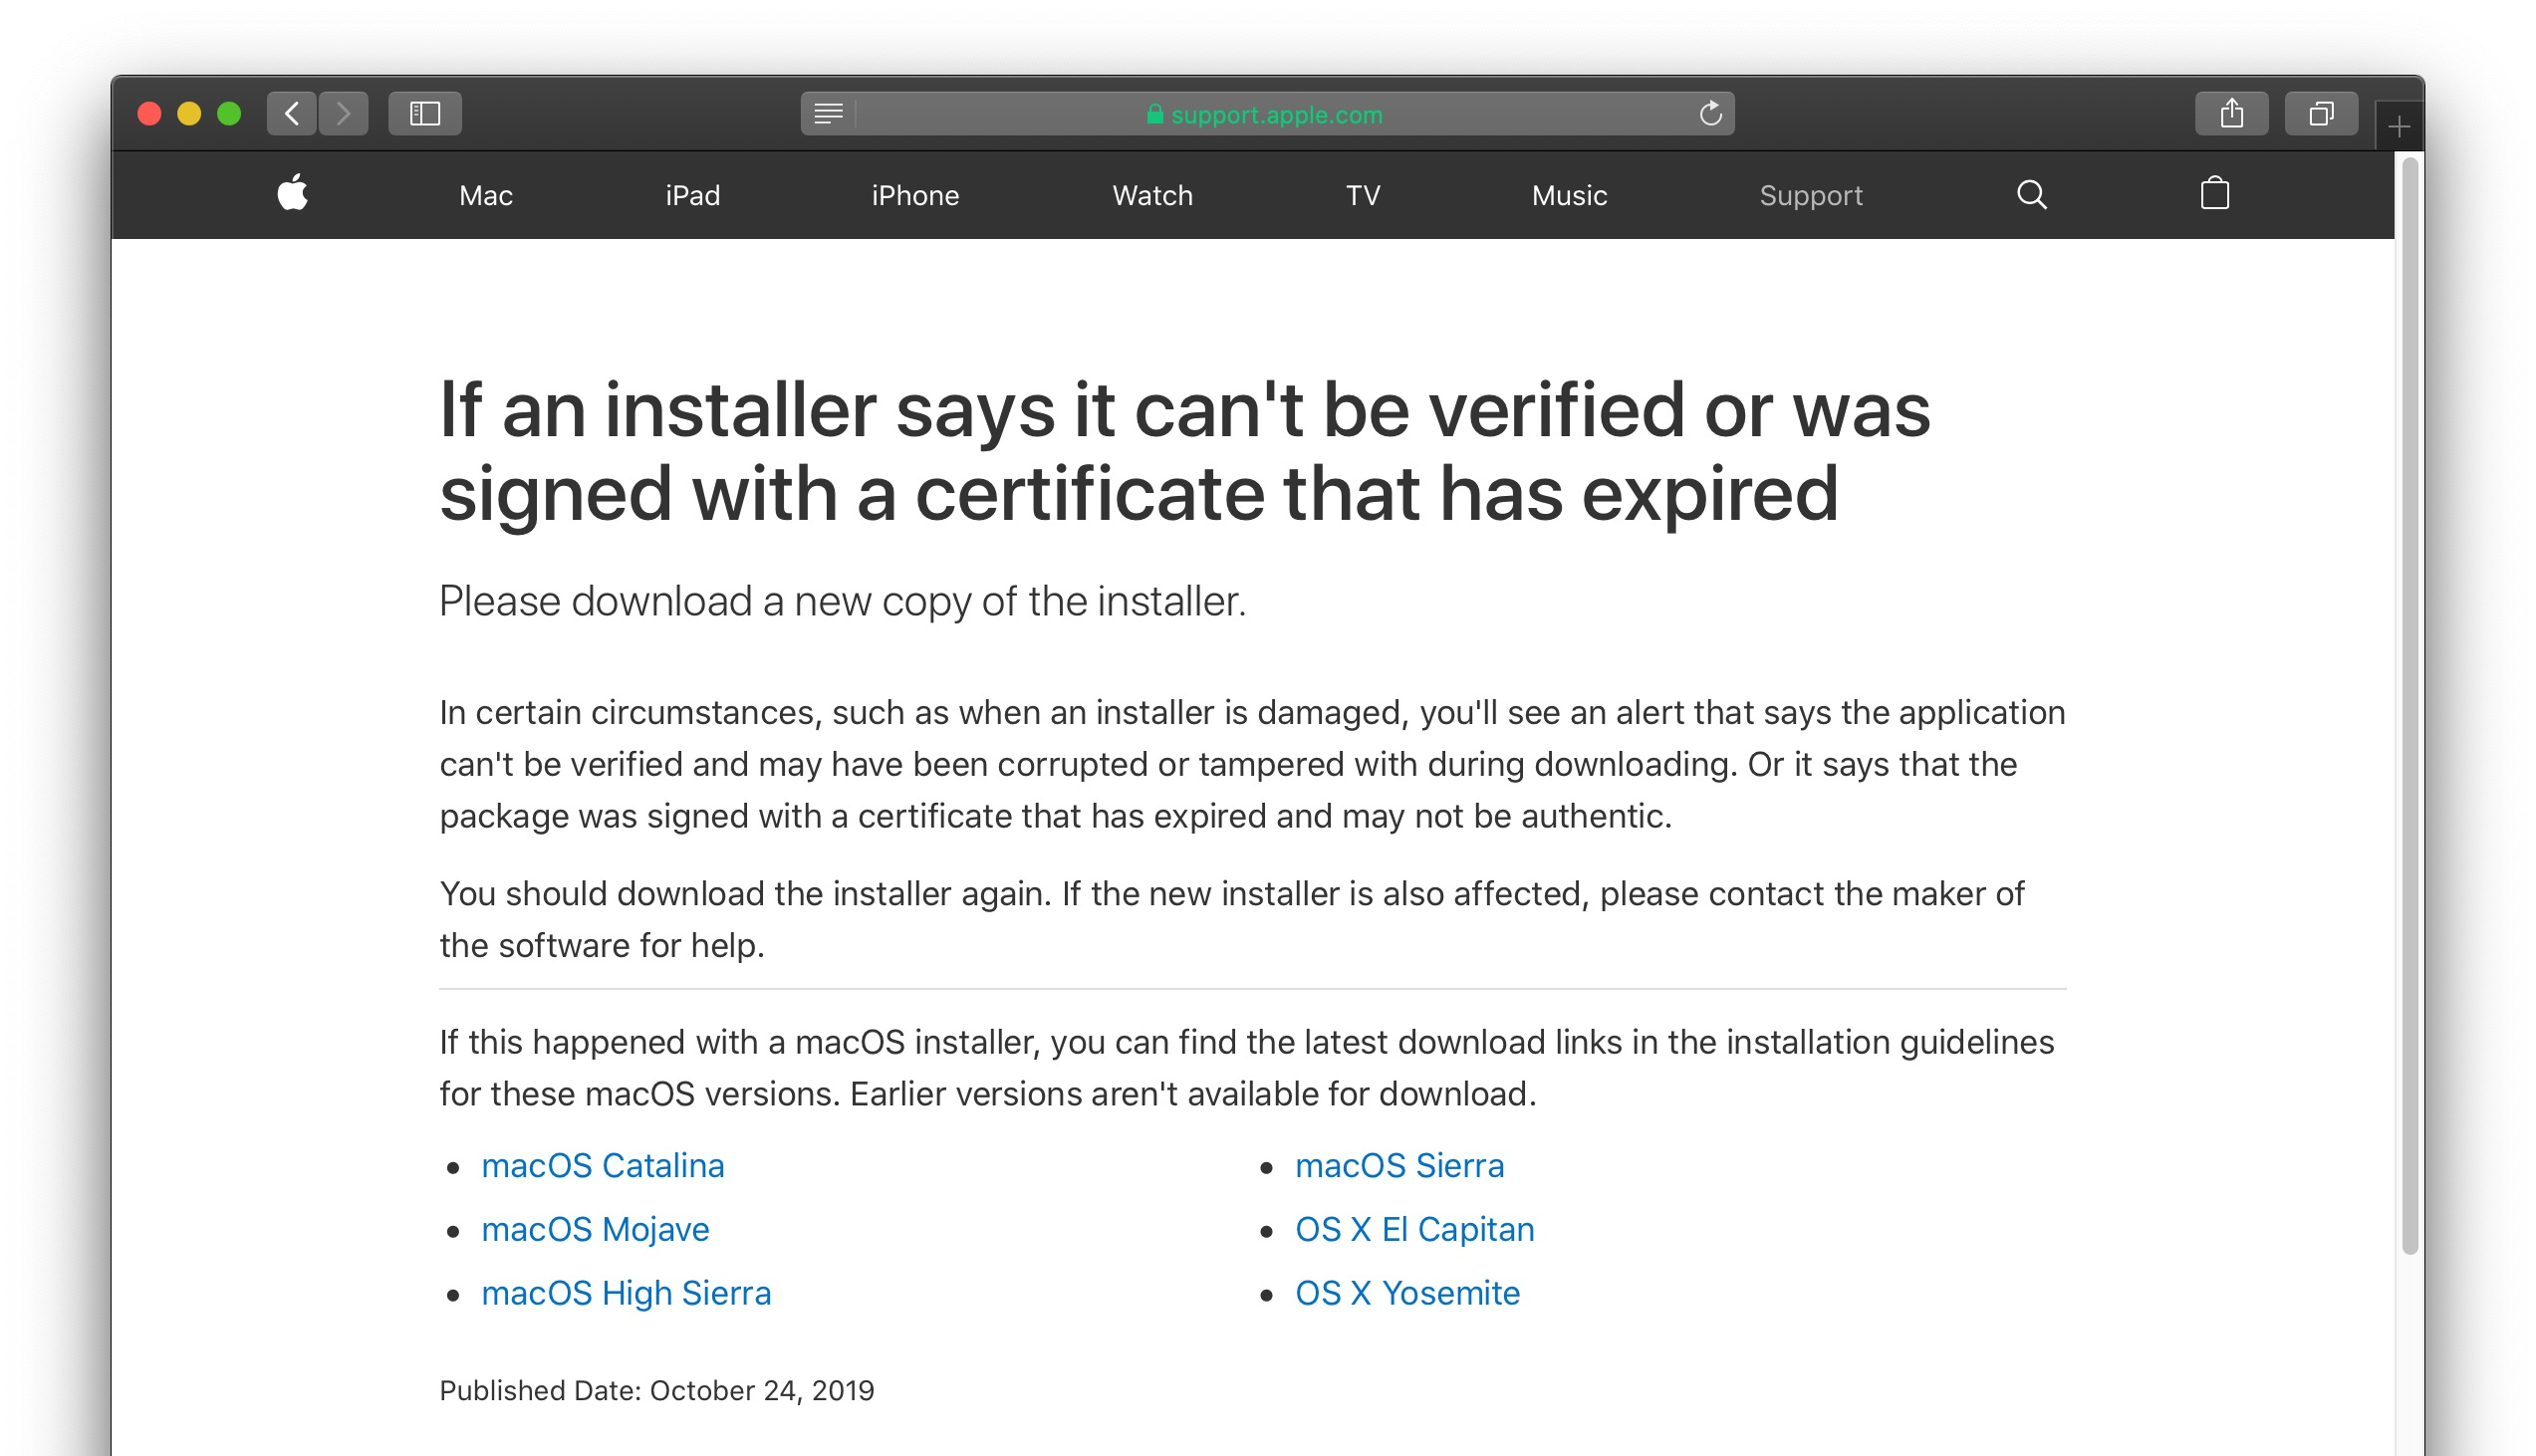 macOS installer says it was signed with a certificate that has expired